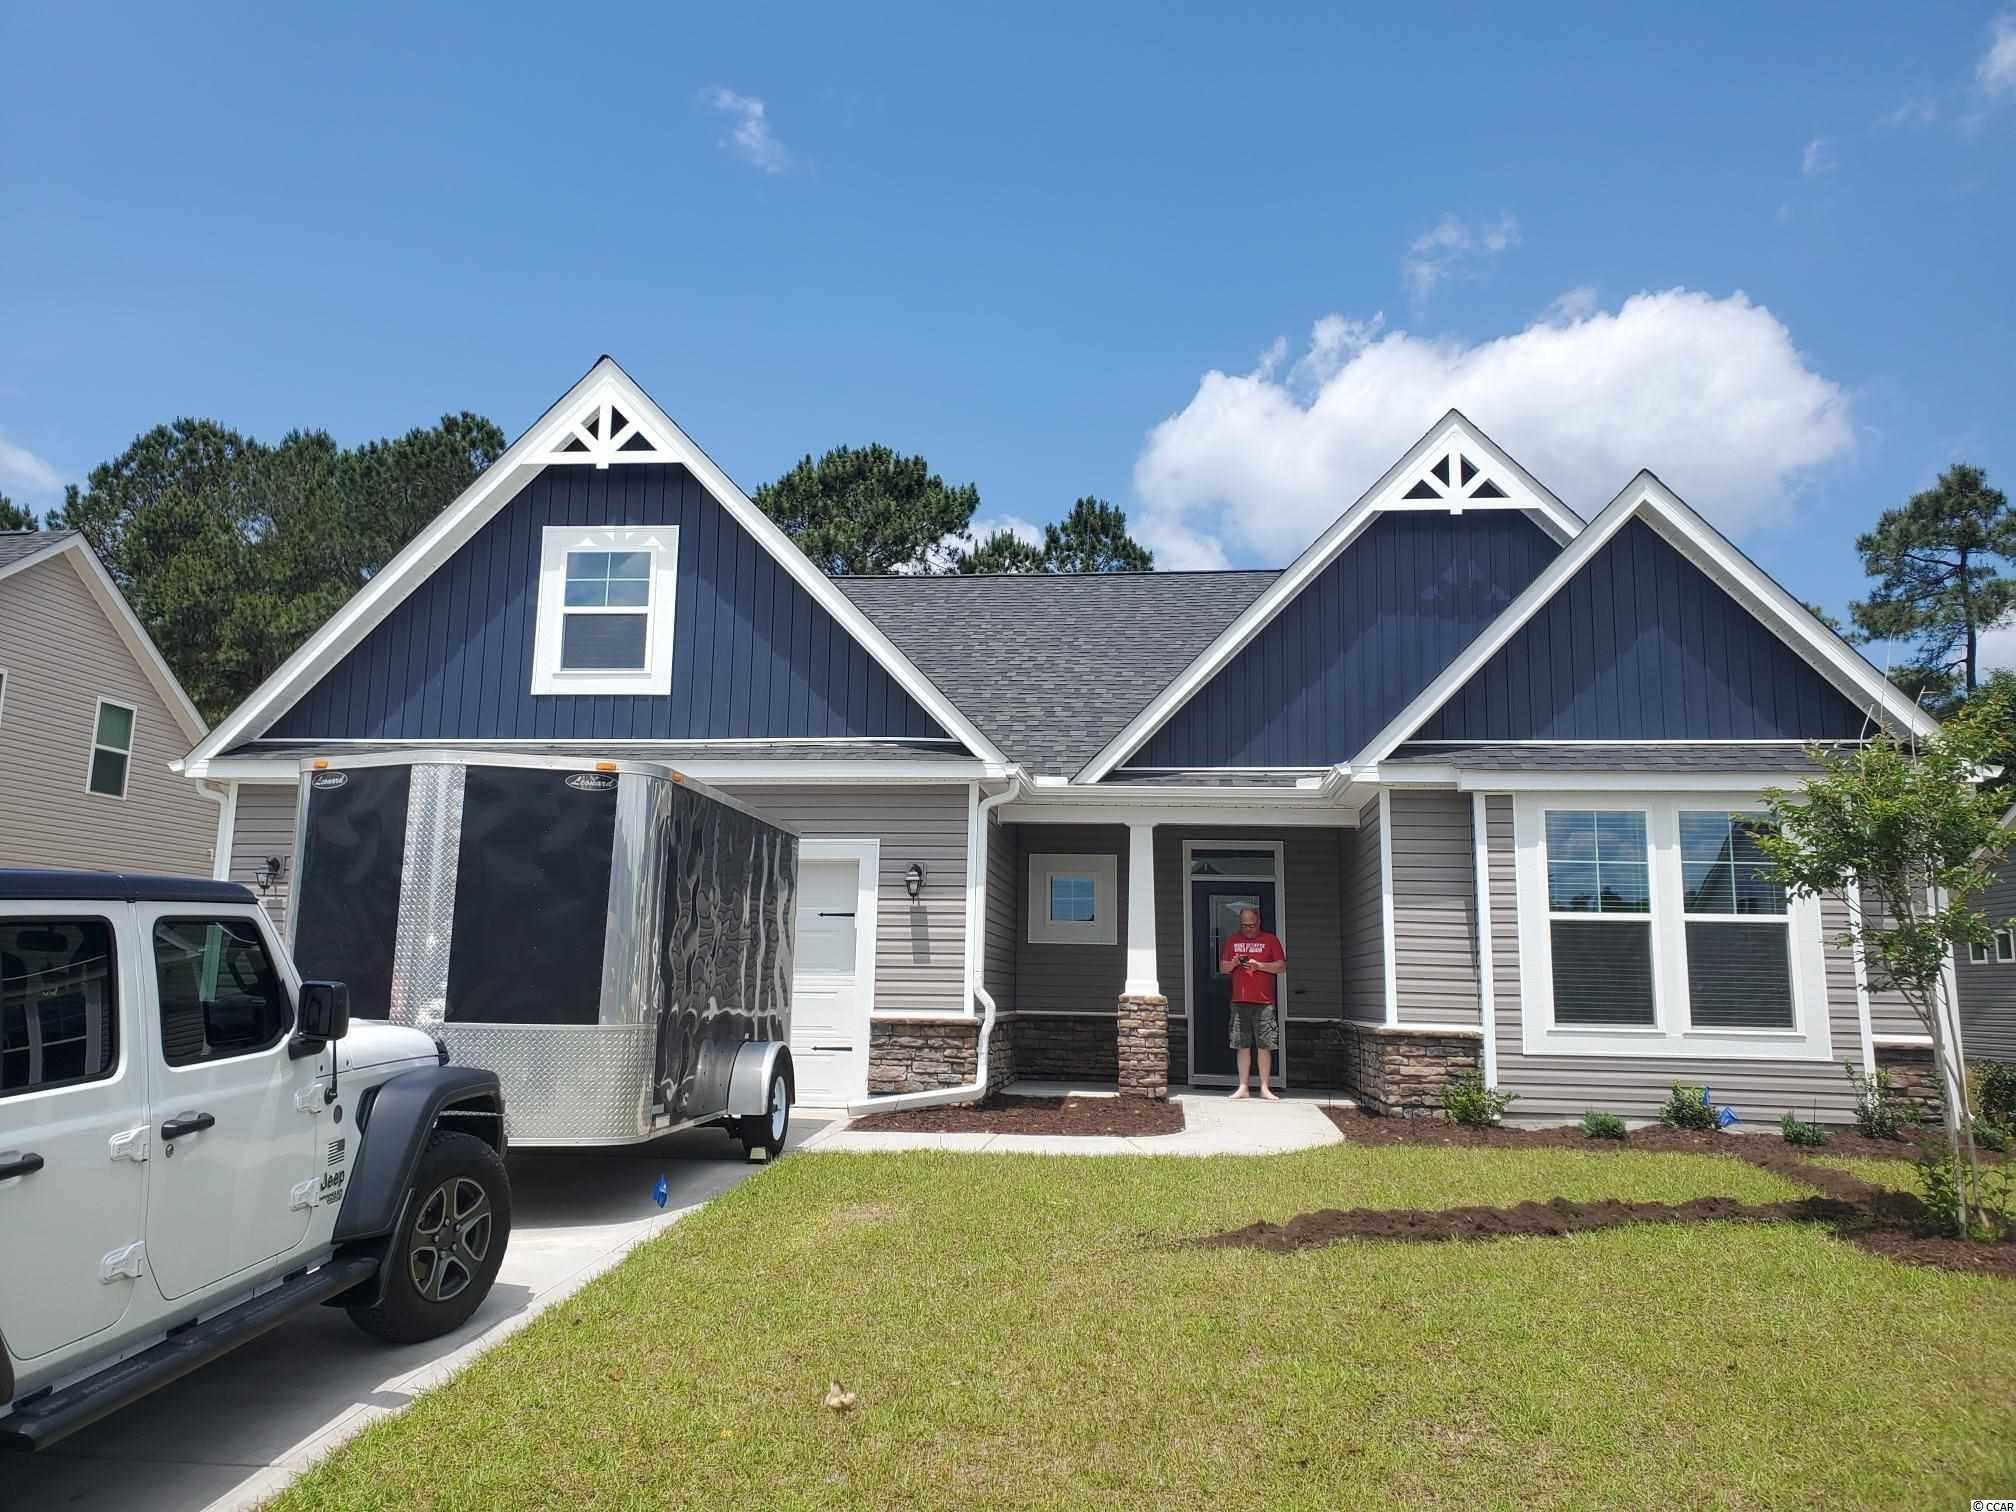 Most Popular Wrightsville floorplan backing up to trees